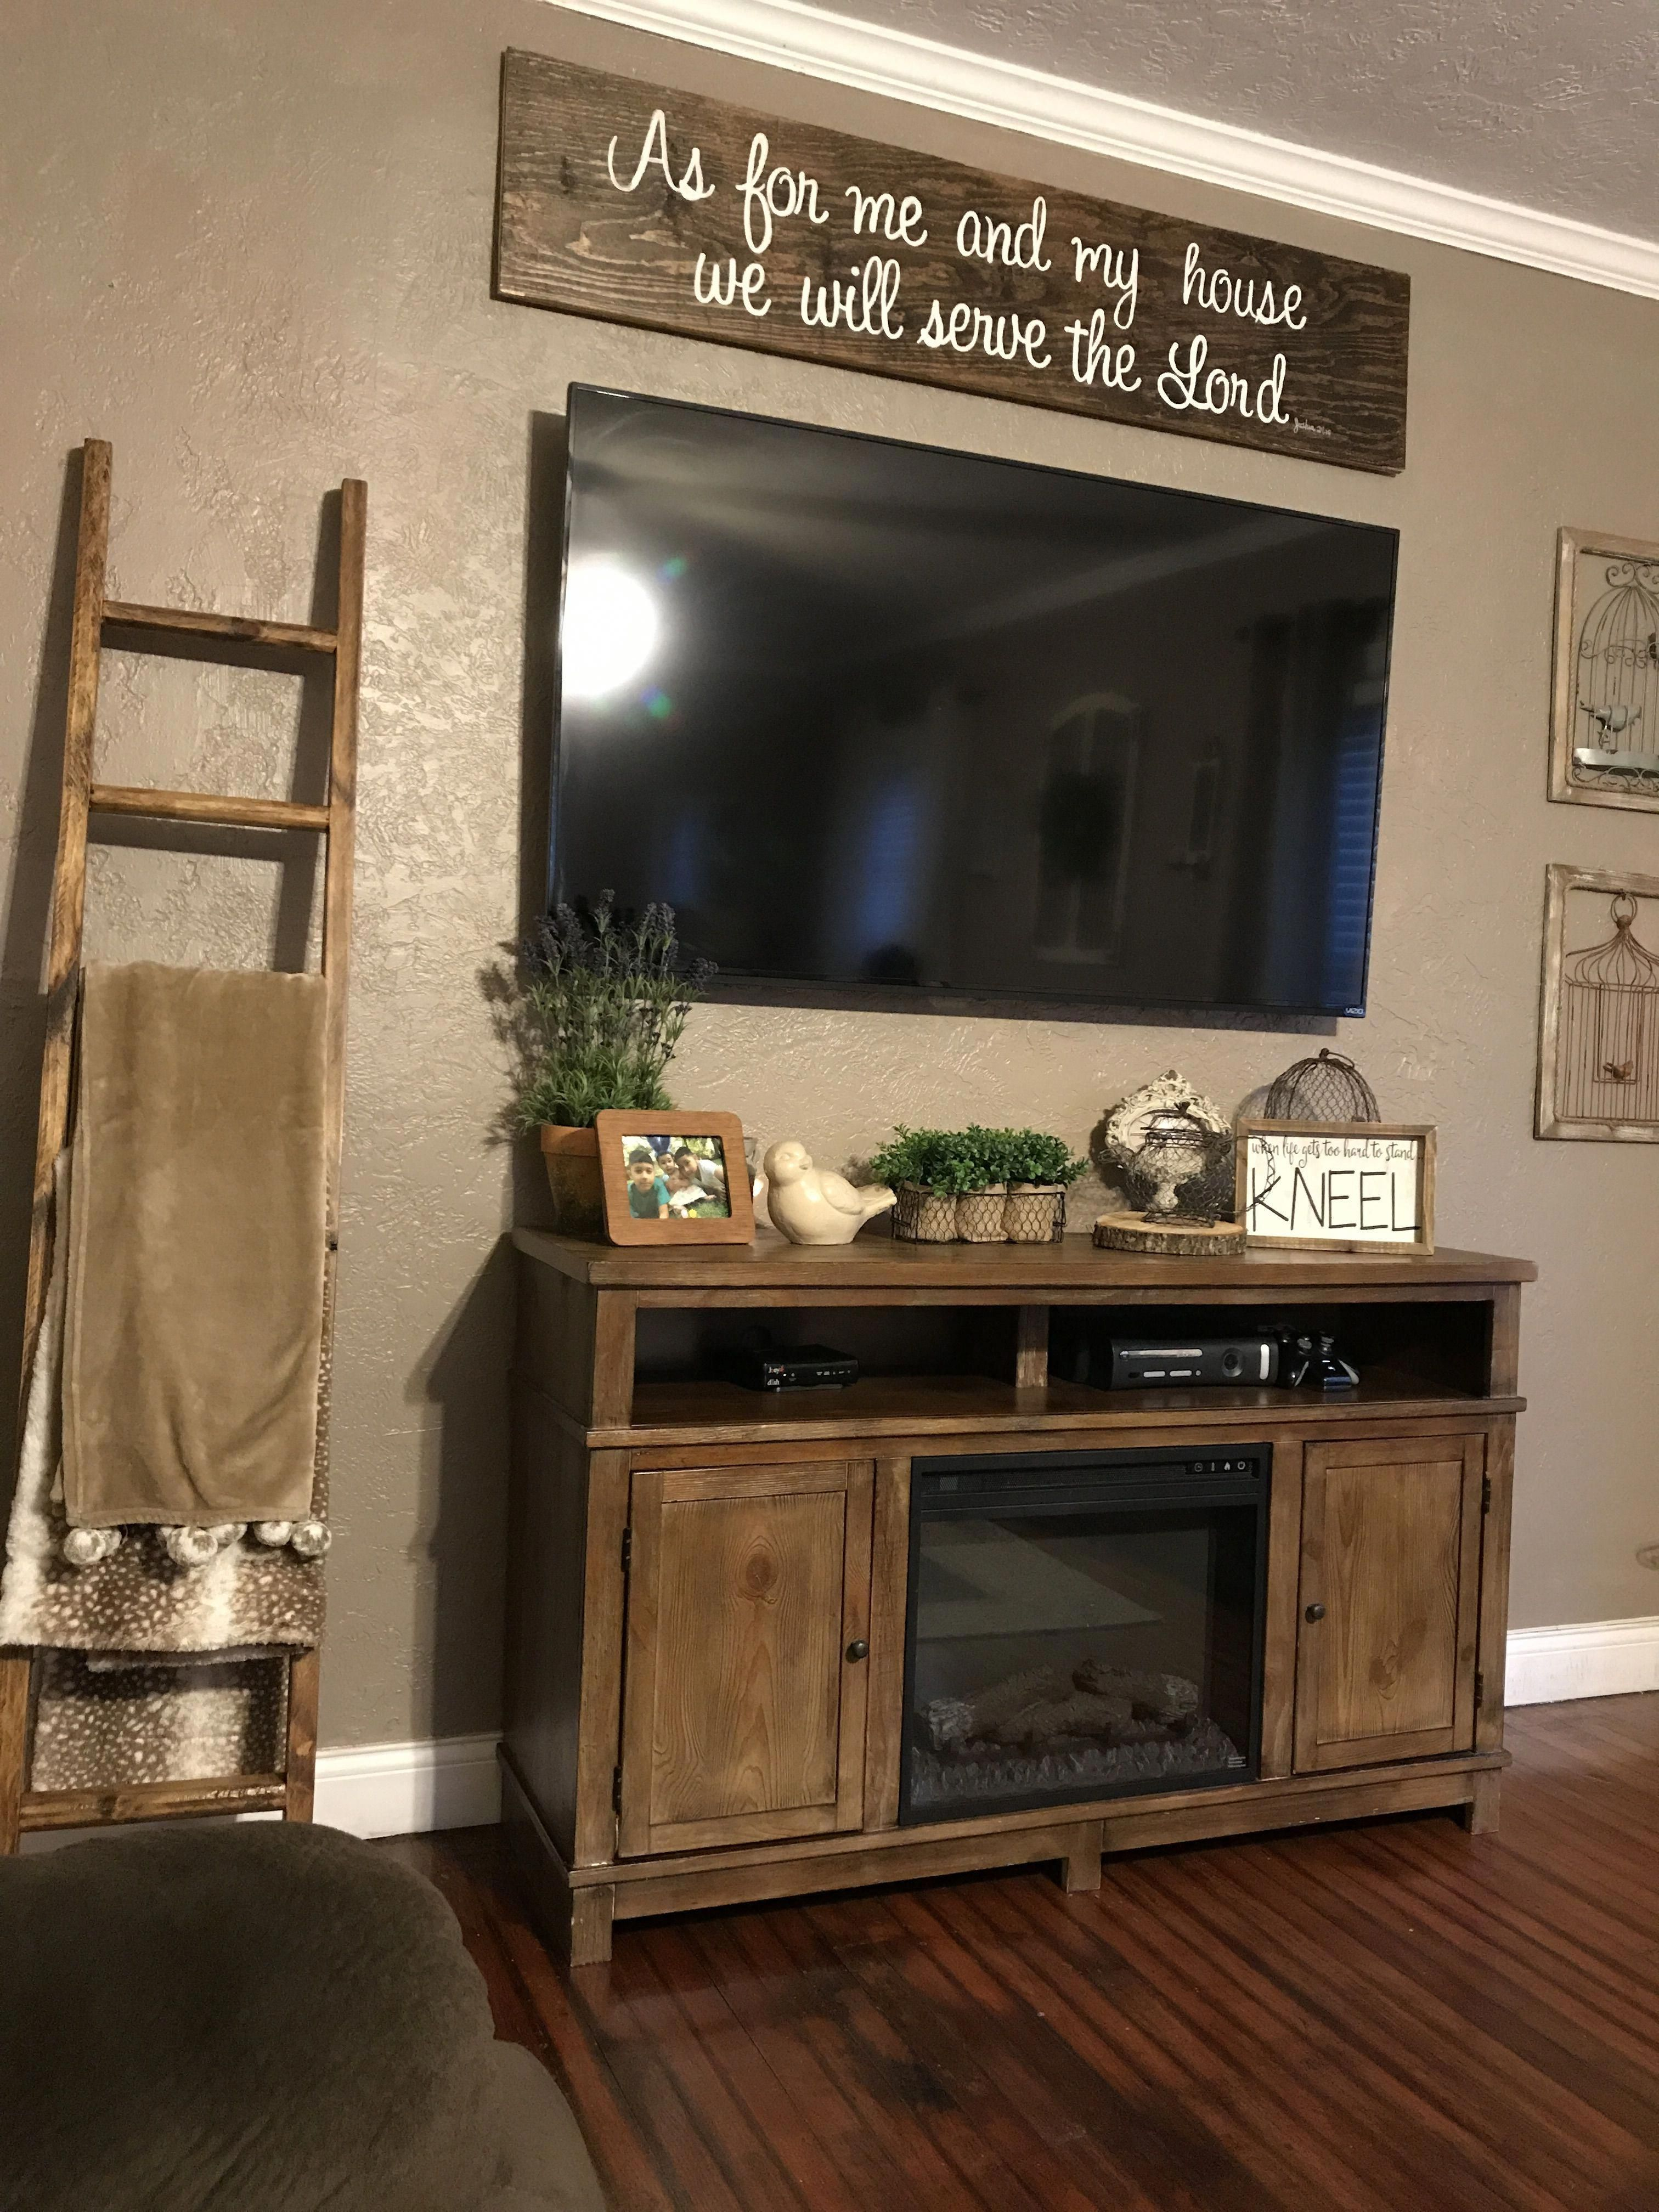 Explore Tv Wall Mount Ideas On Pinterest See More Ideas About Tv Wall Ideas Living Room M Living Room Tv Wall Farm House Living Room Living Room Tv Stand